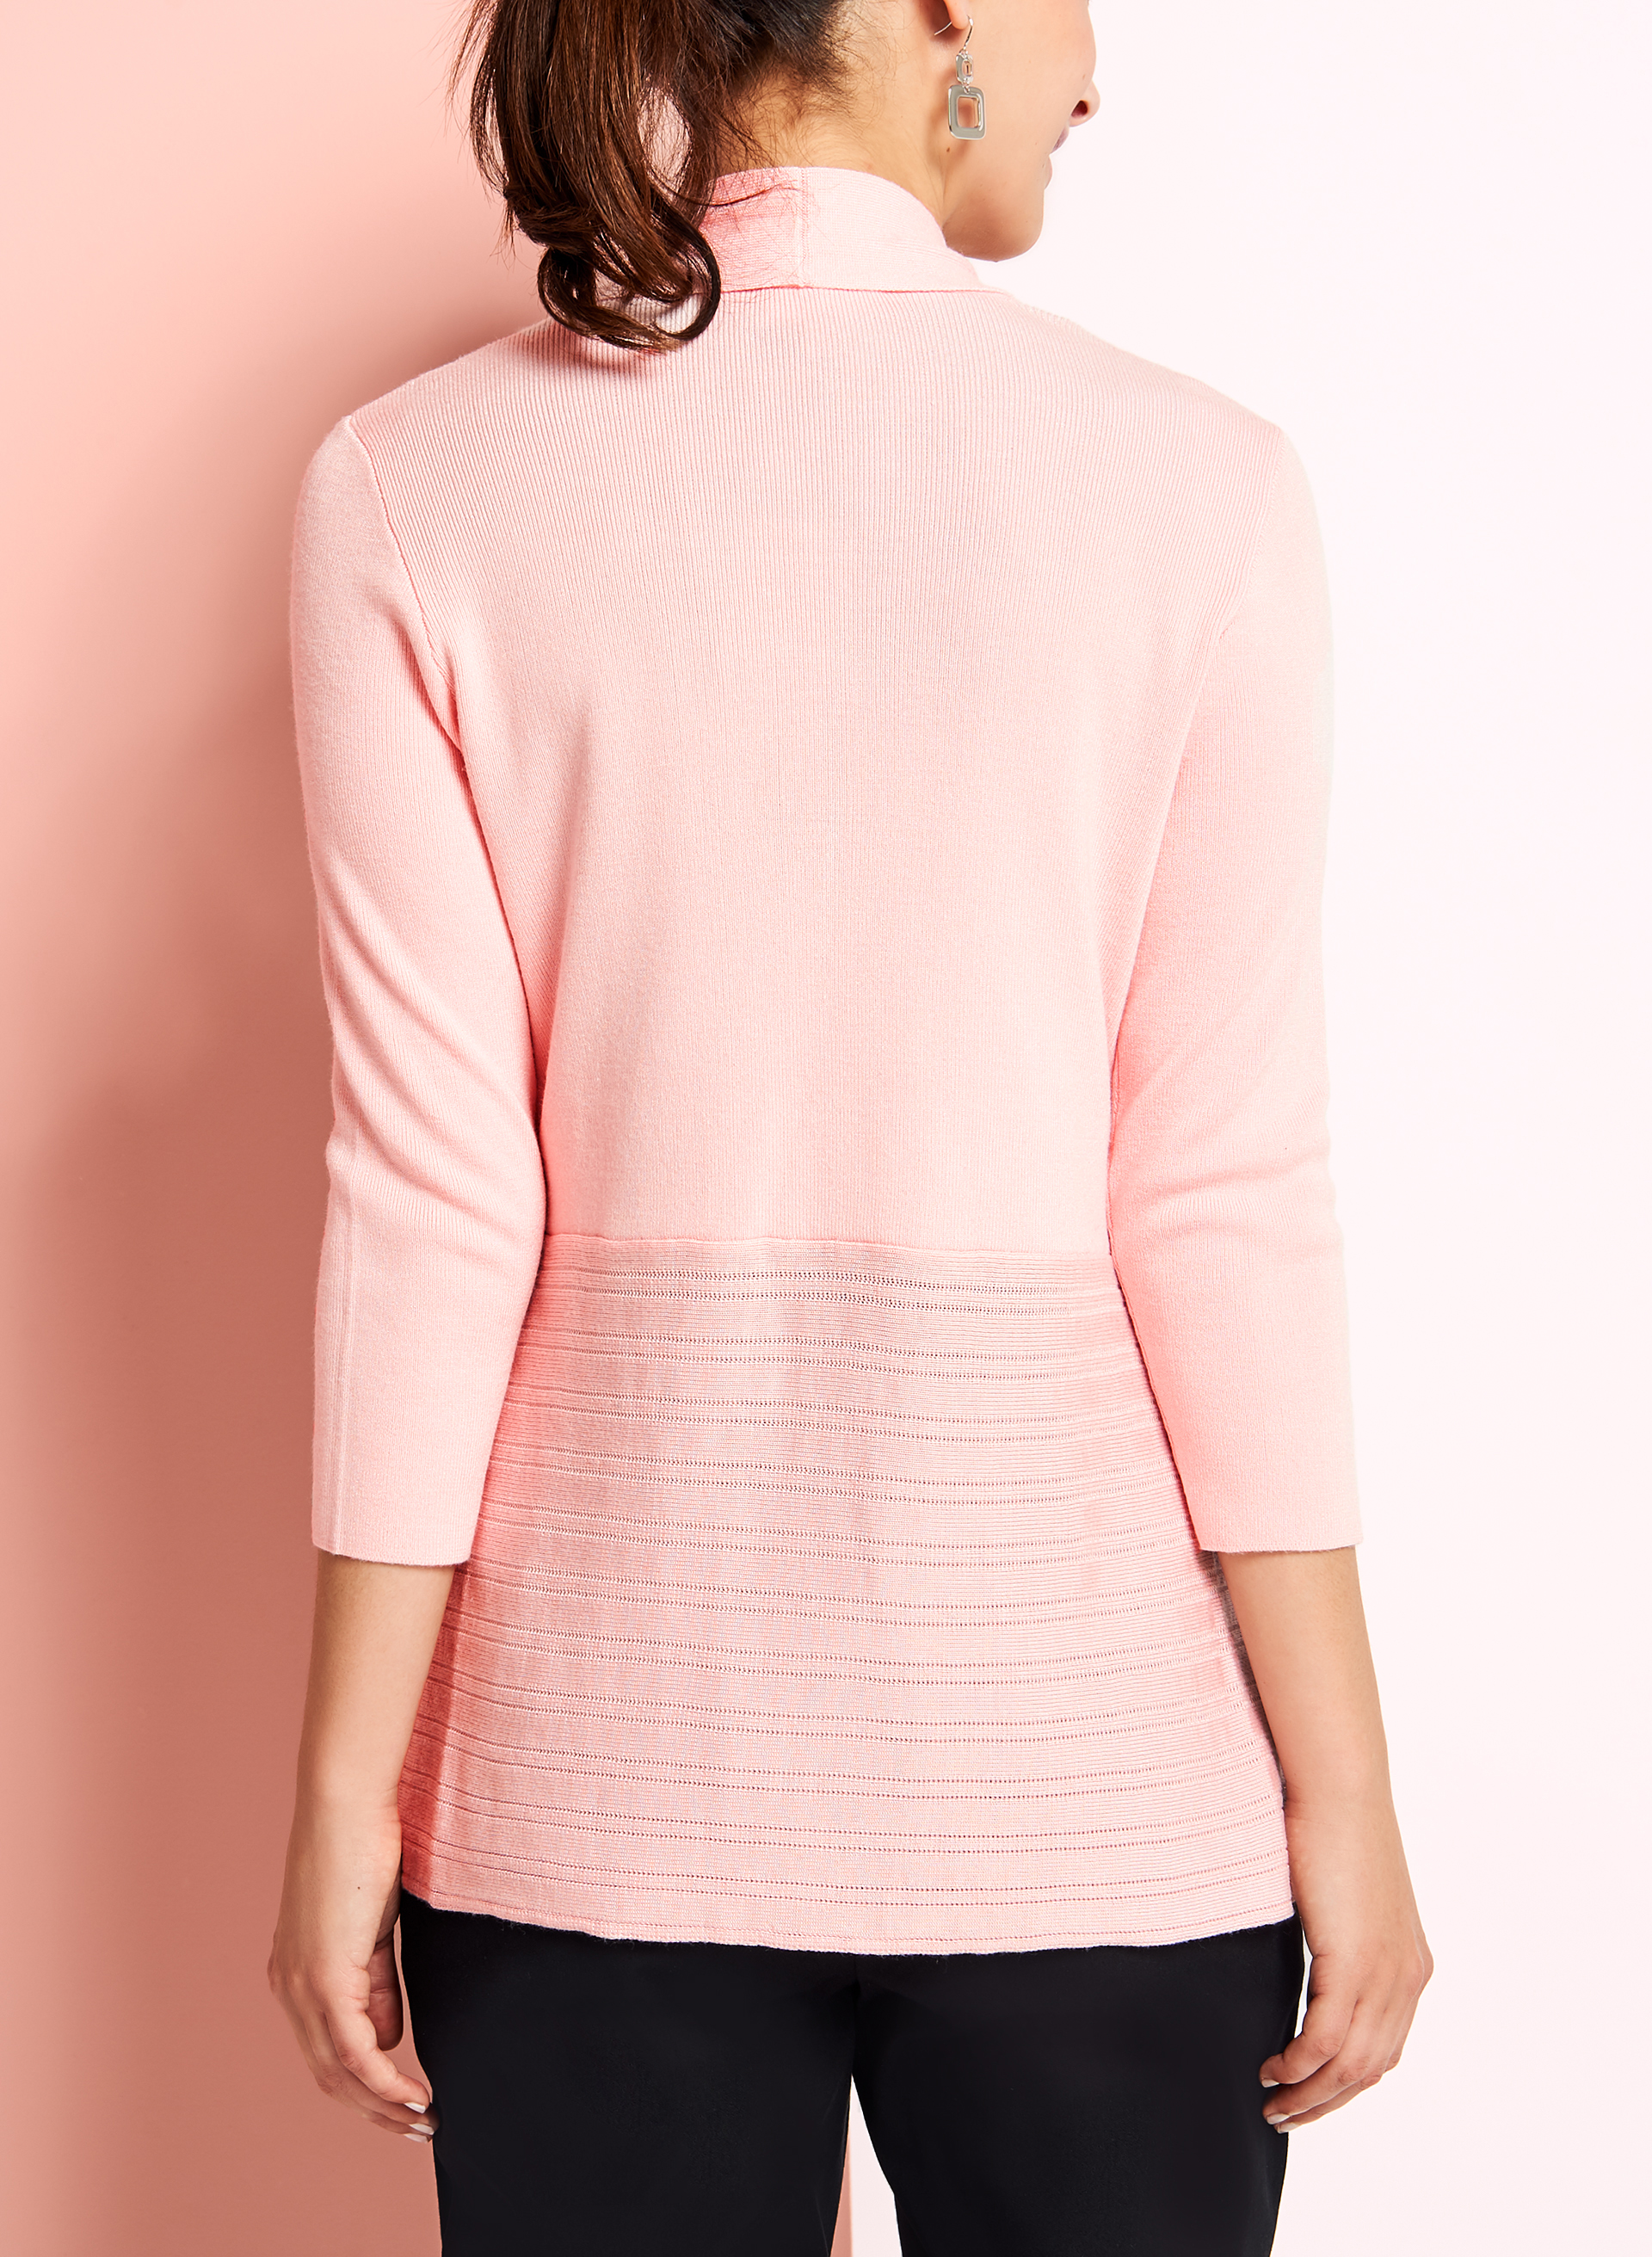 Shop for and buy pointelle sweater online at Macy's. Find pointelle sweater at Macy's.